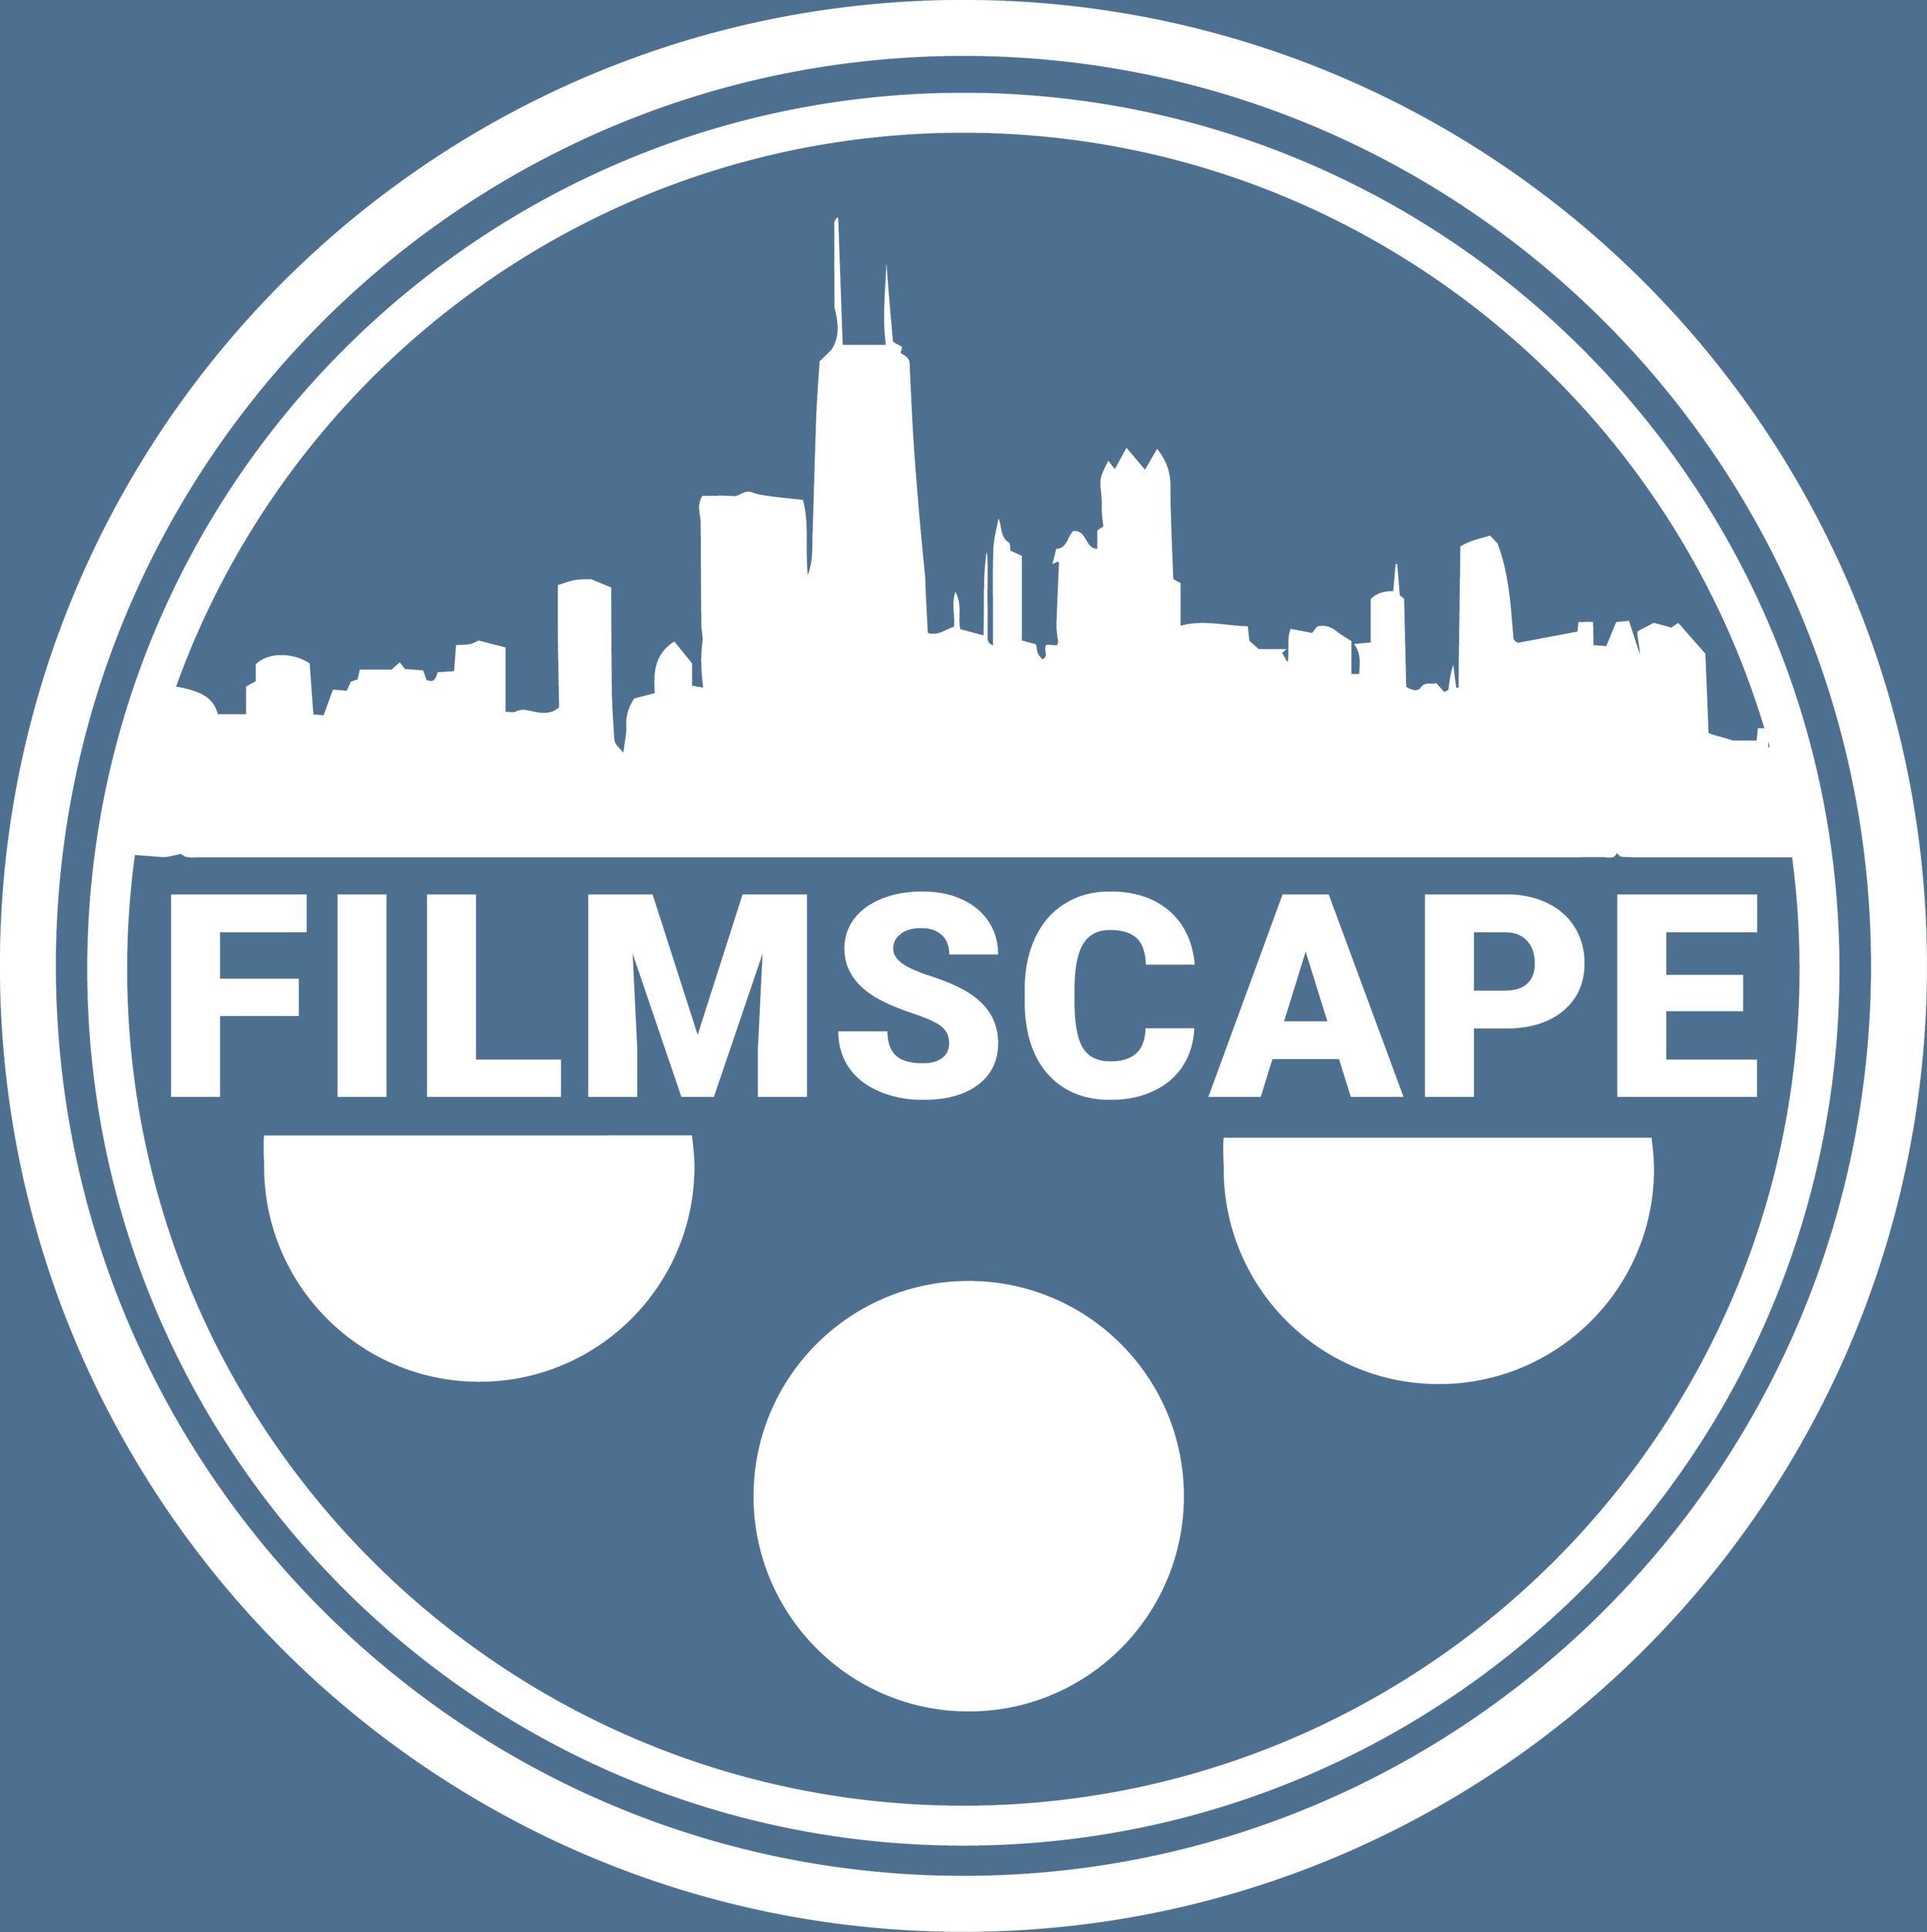 filmscape white circles_BG_small.png